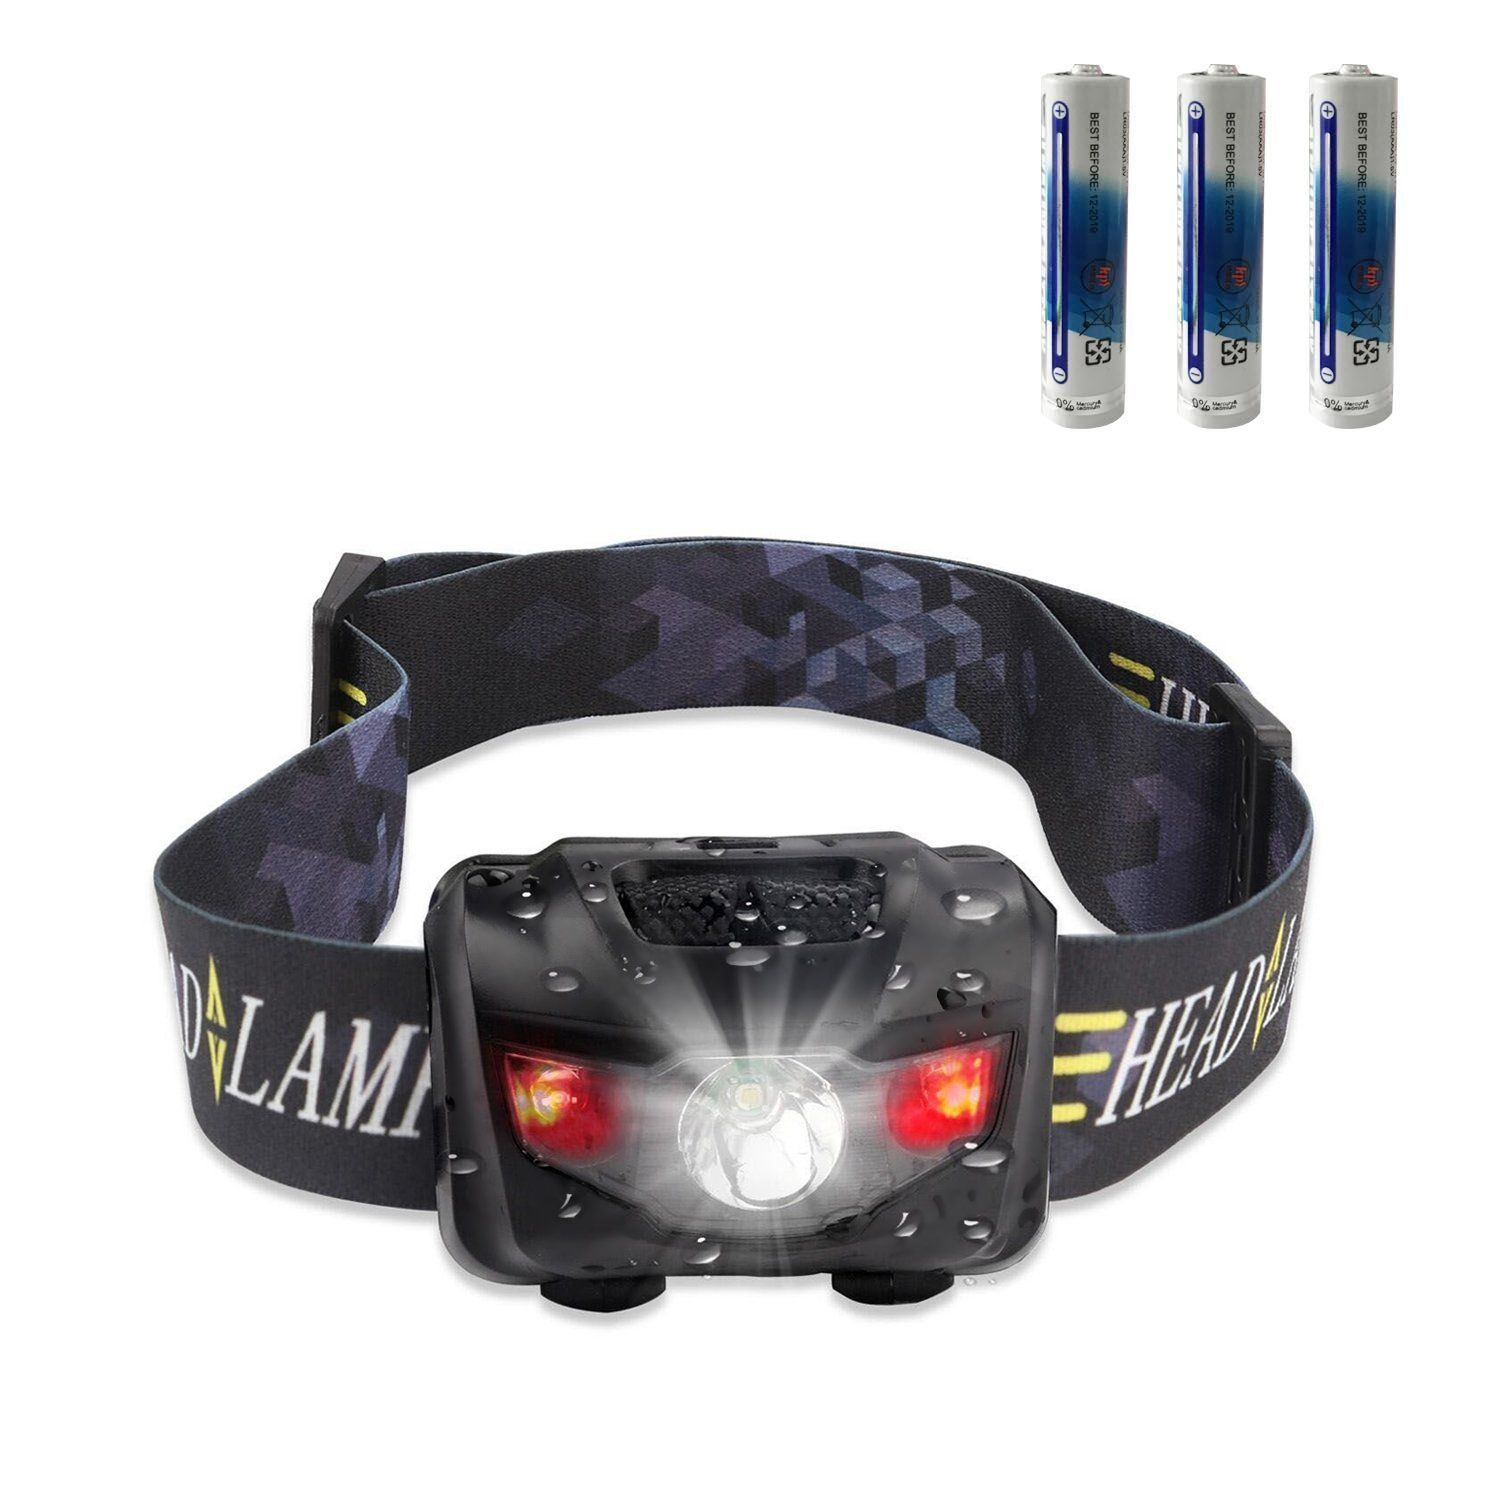 Cree Led Headlamp Excellent Budget Alternative To Black Diamond Spot Bright Headlights Led Headlamp Light Red